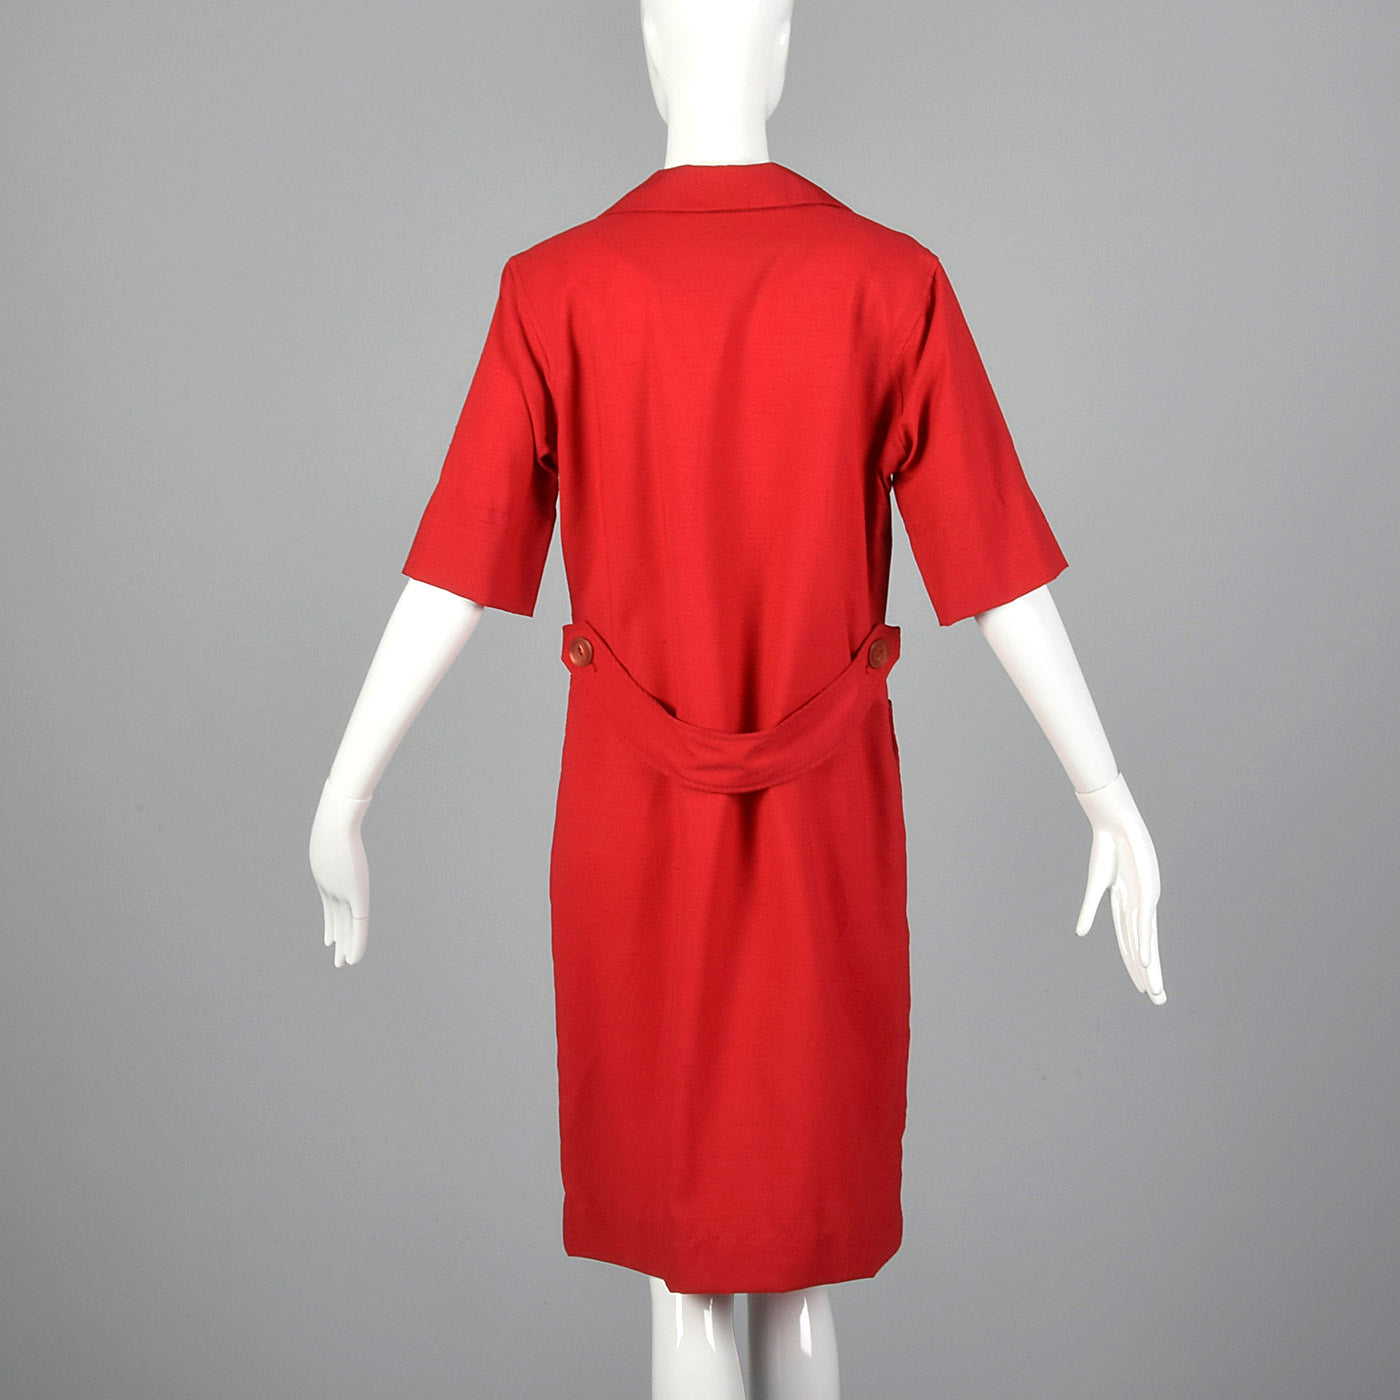 1960s Red Day Dress with Bird Embroidery